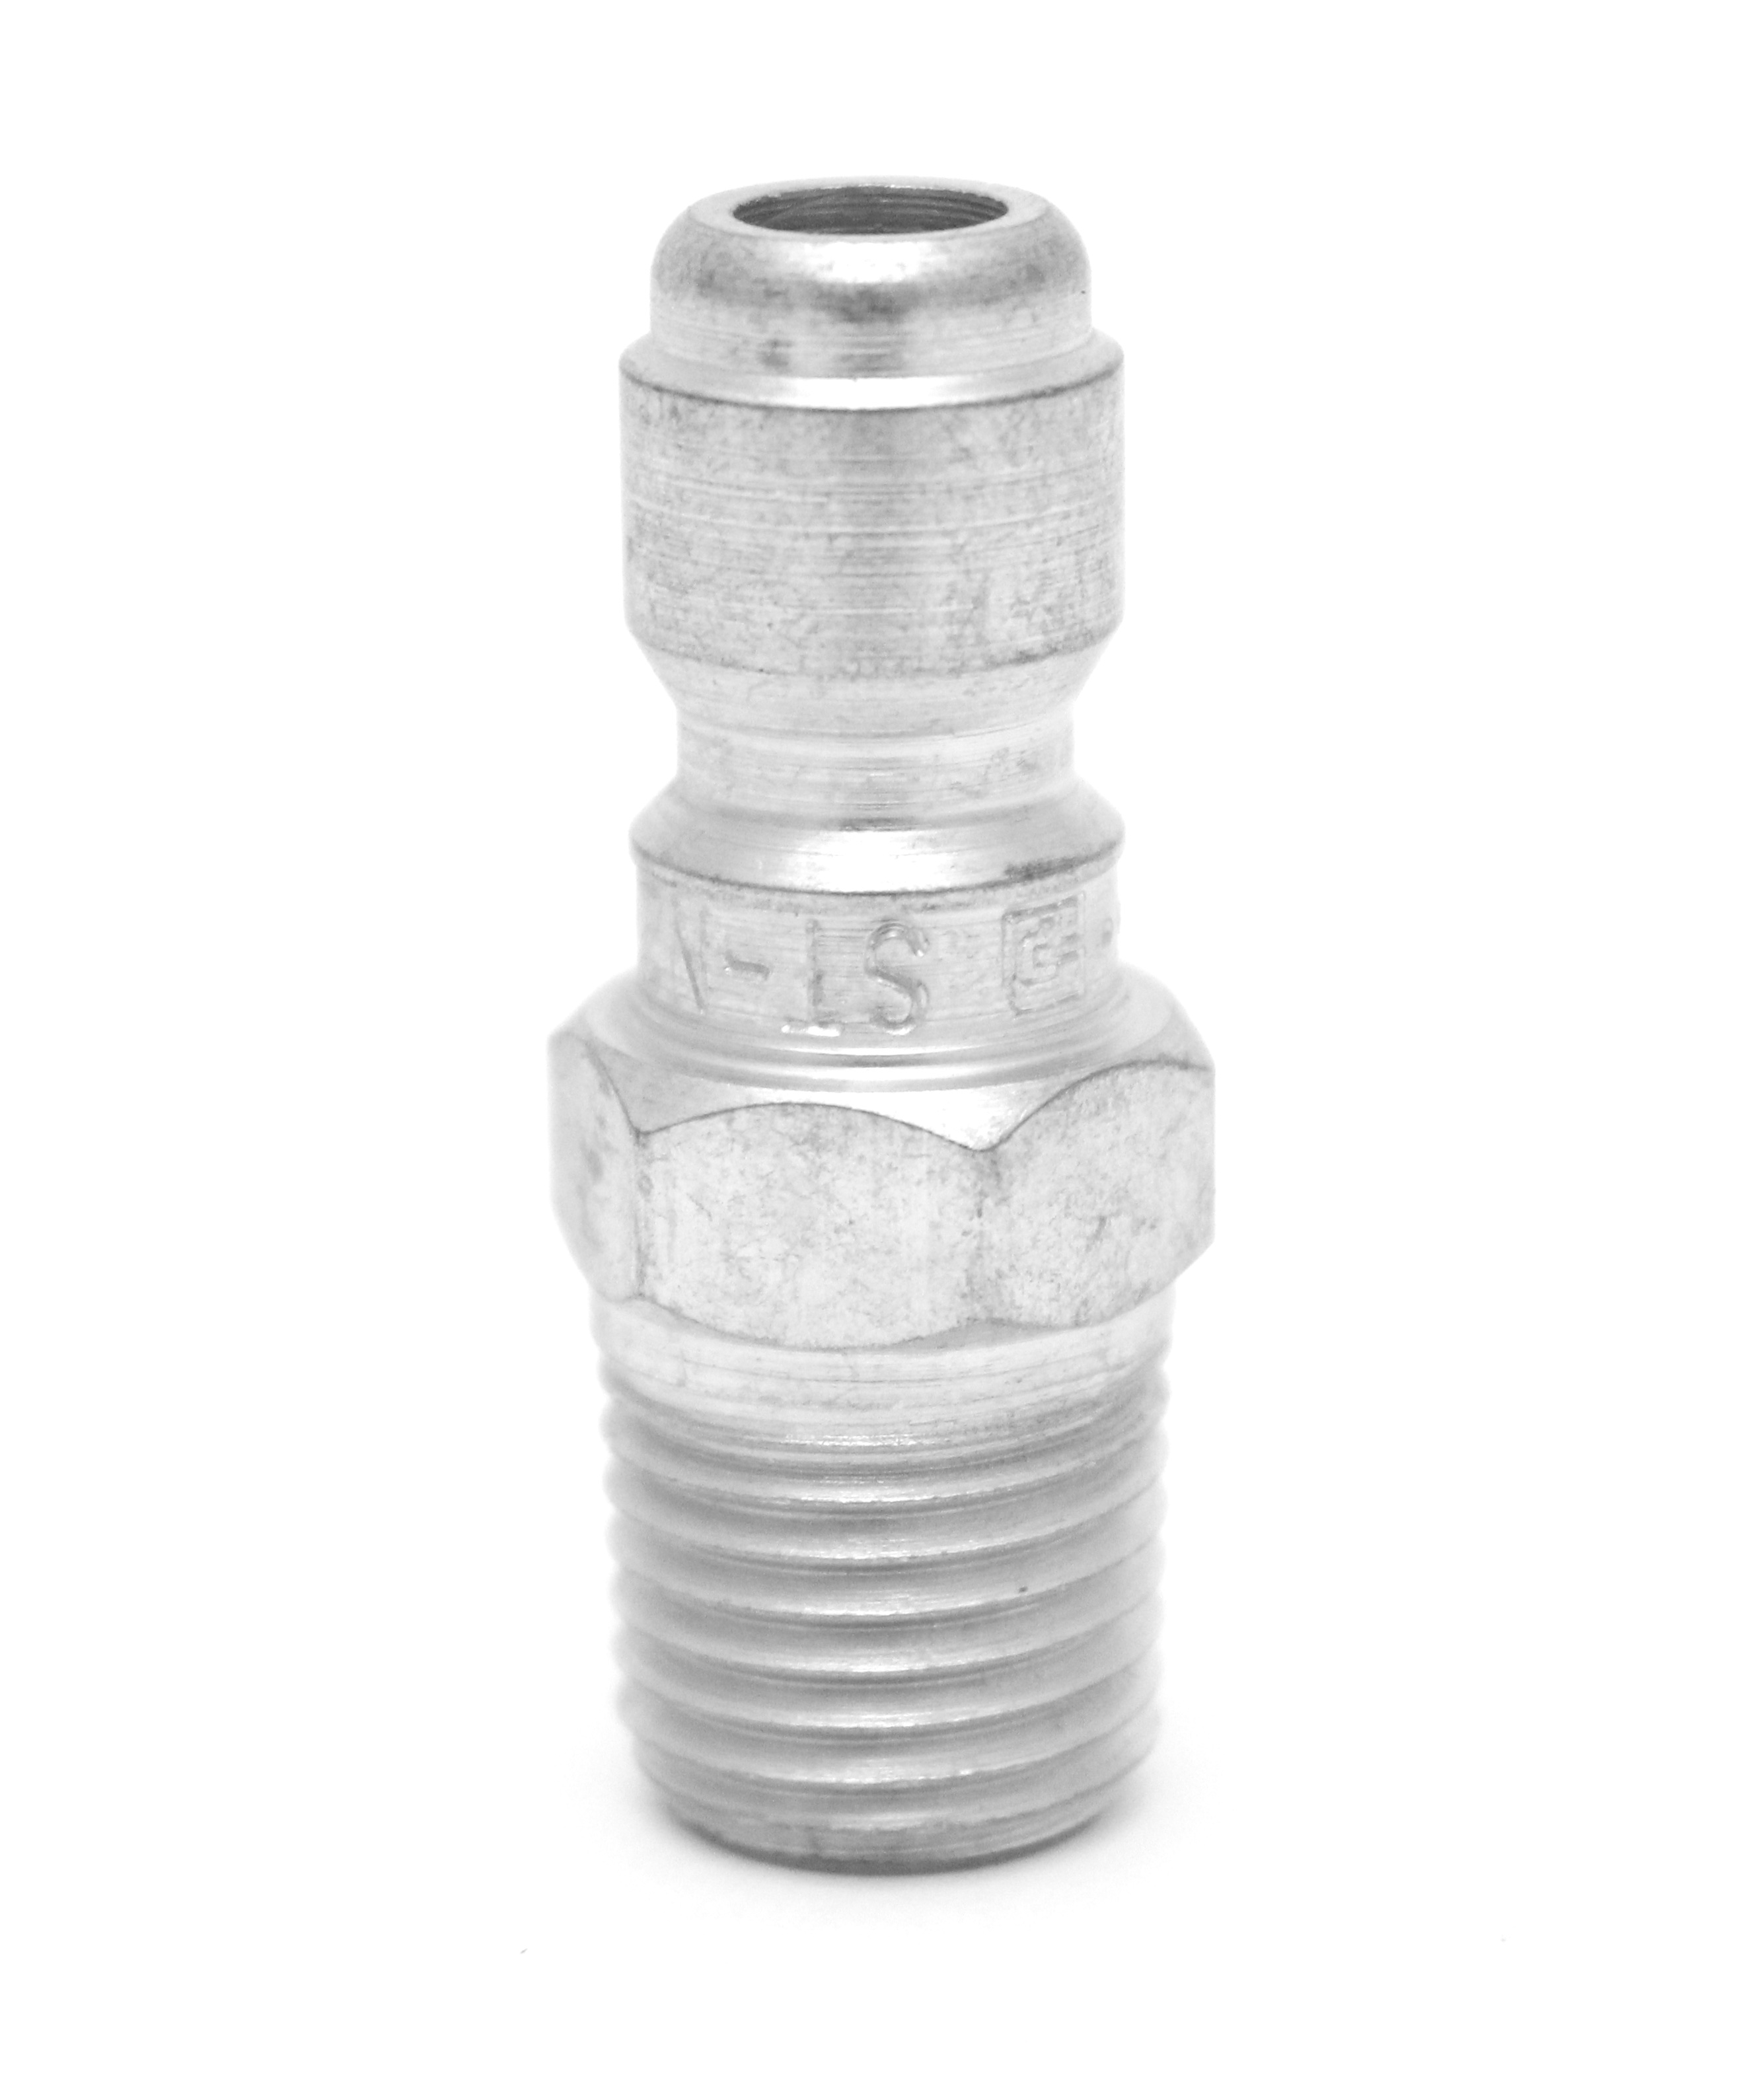 Hotsy Male Quick Coupler Plugs